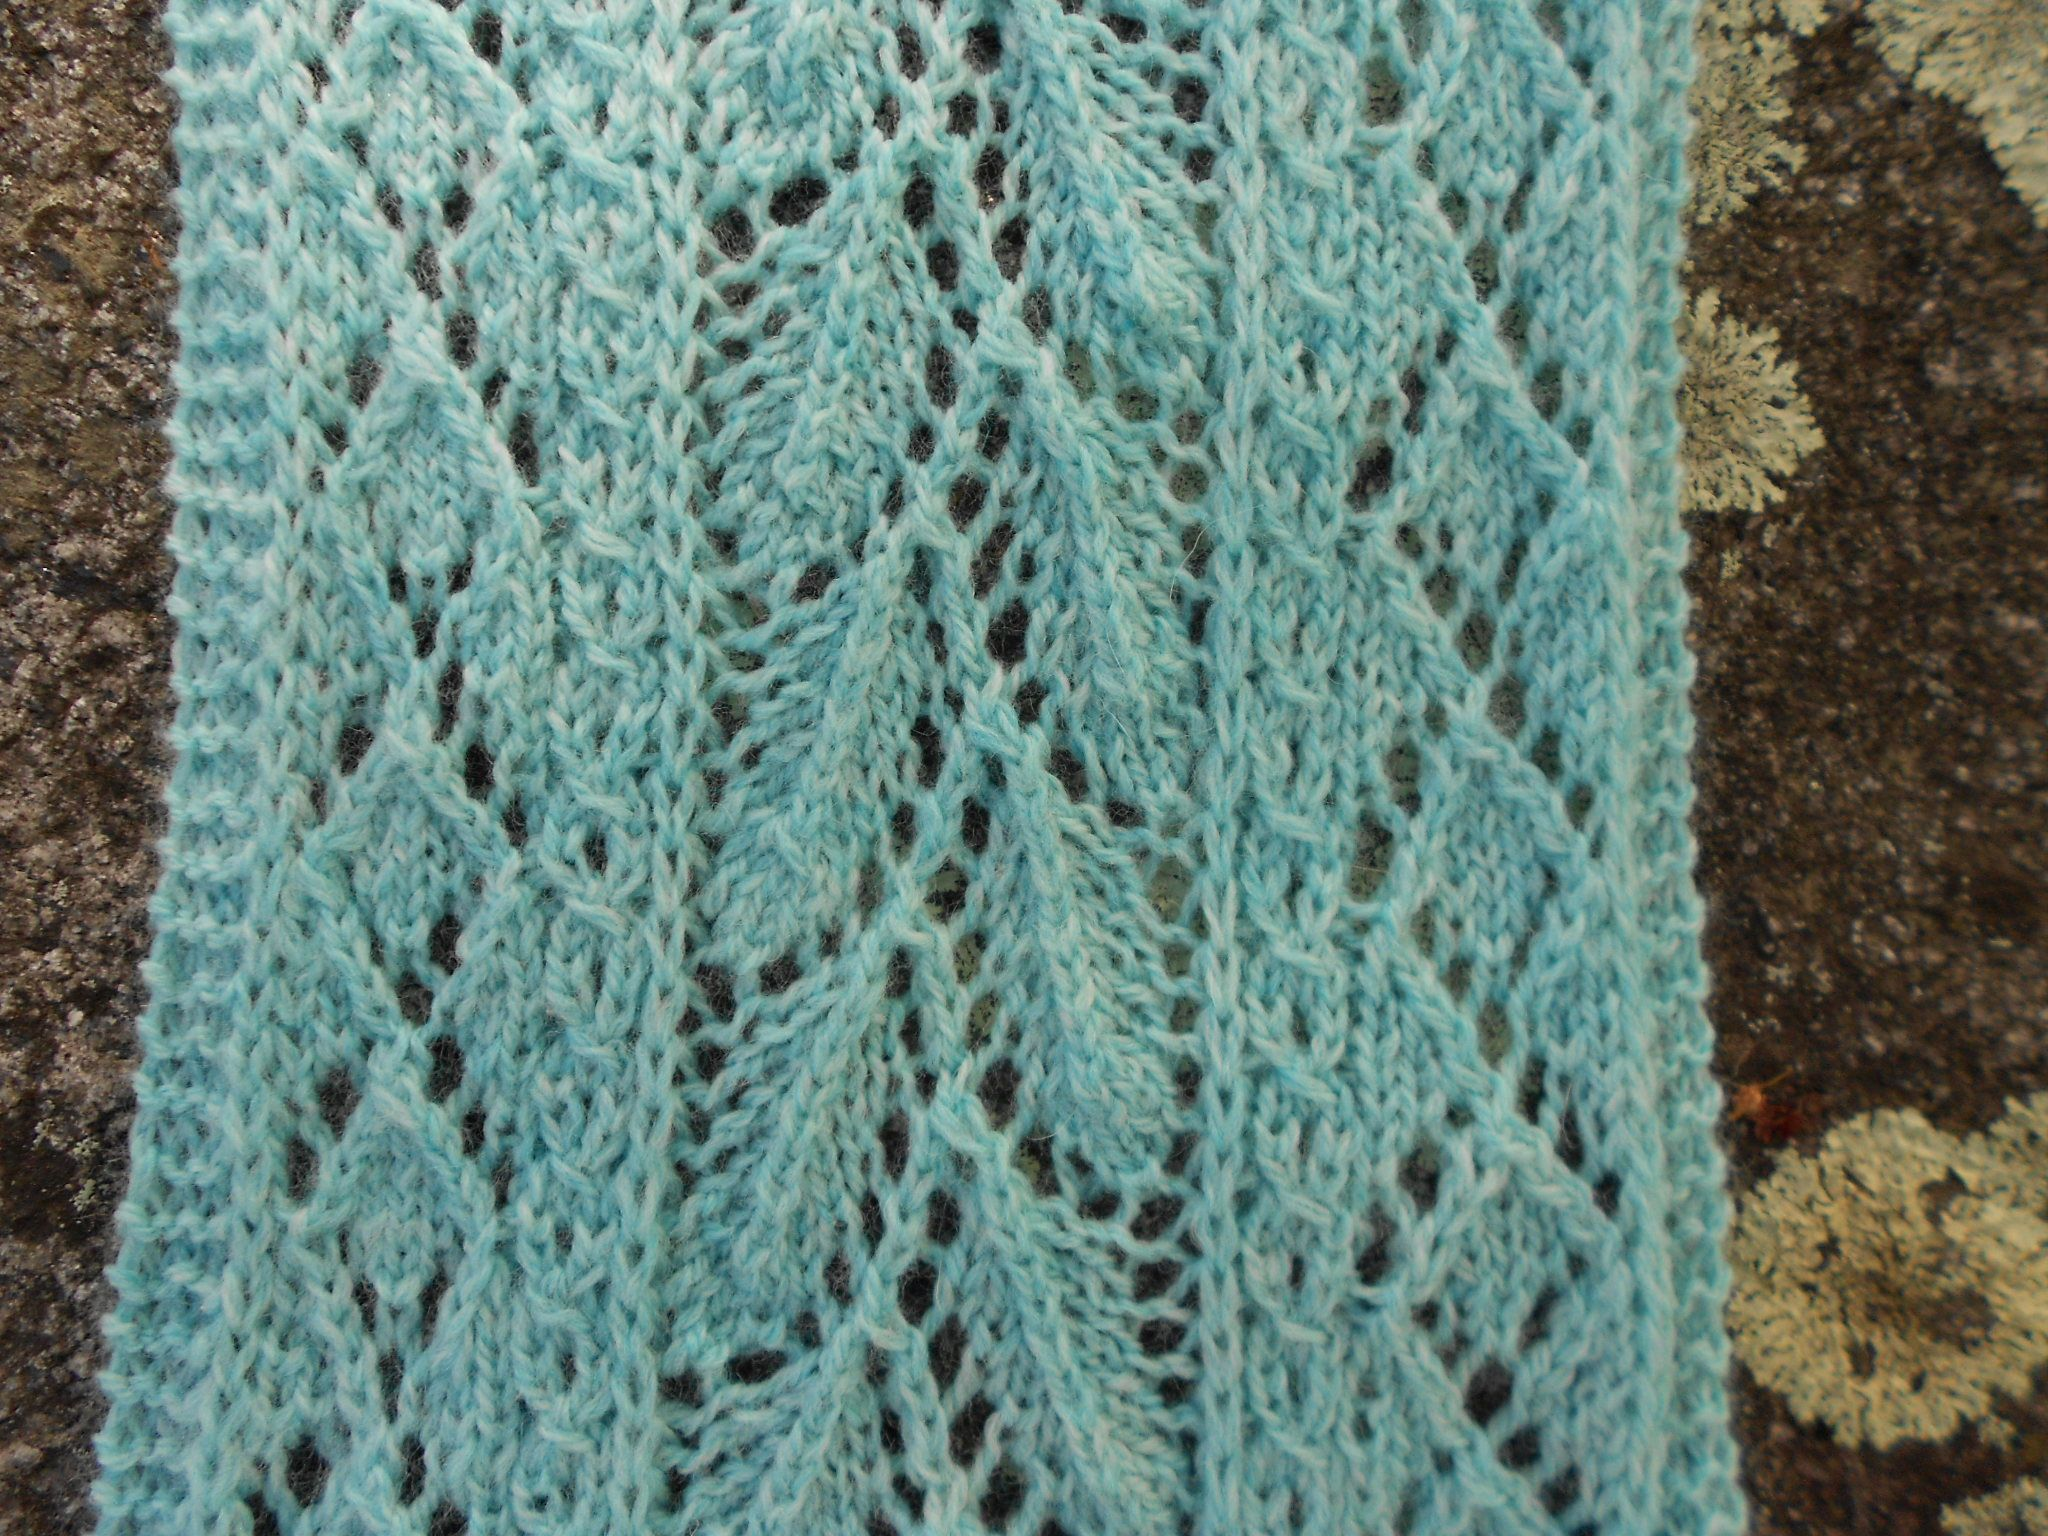 Mint lace scarf pattern knitting patterns and crochet patterns mint lace scarf pattern knitting patterns and crochet patterns from knitpicks bankloansurffo Image collections